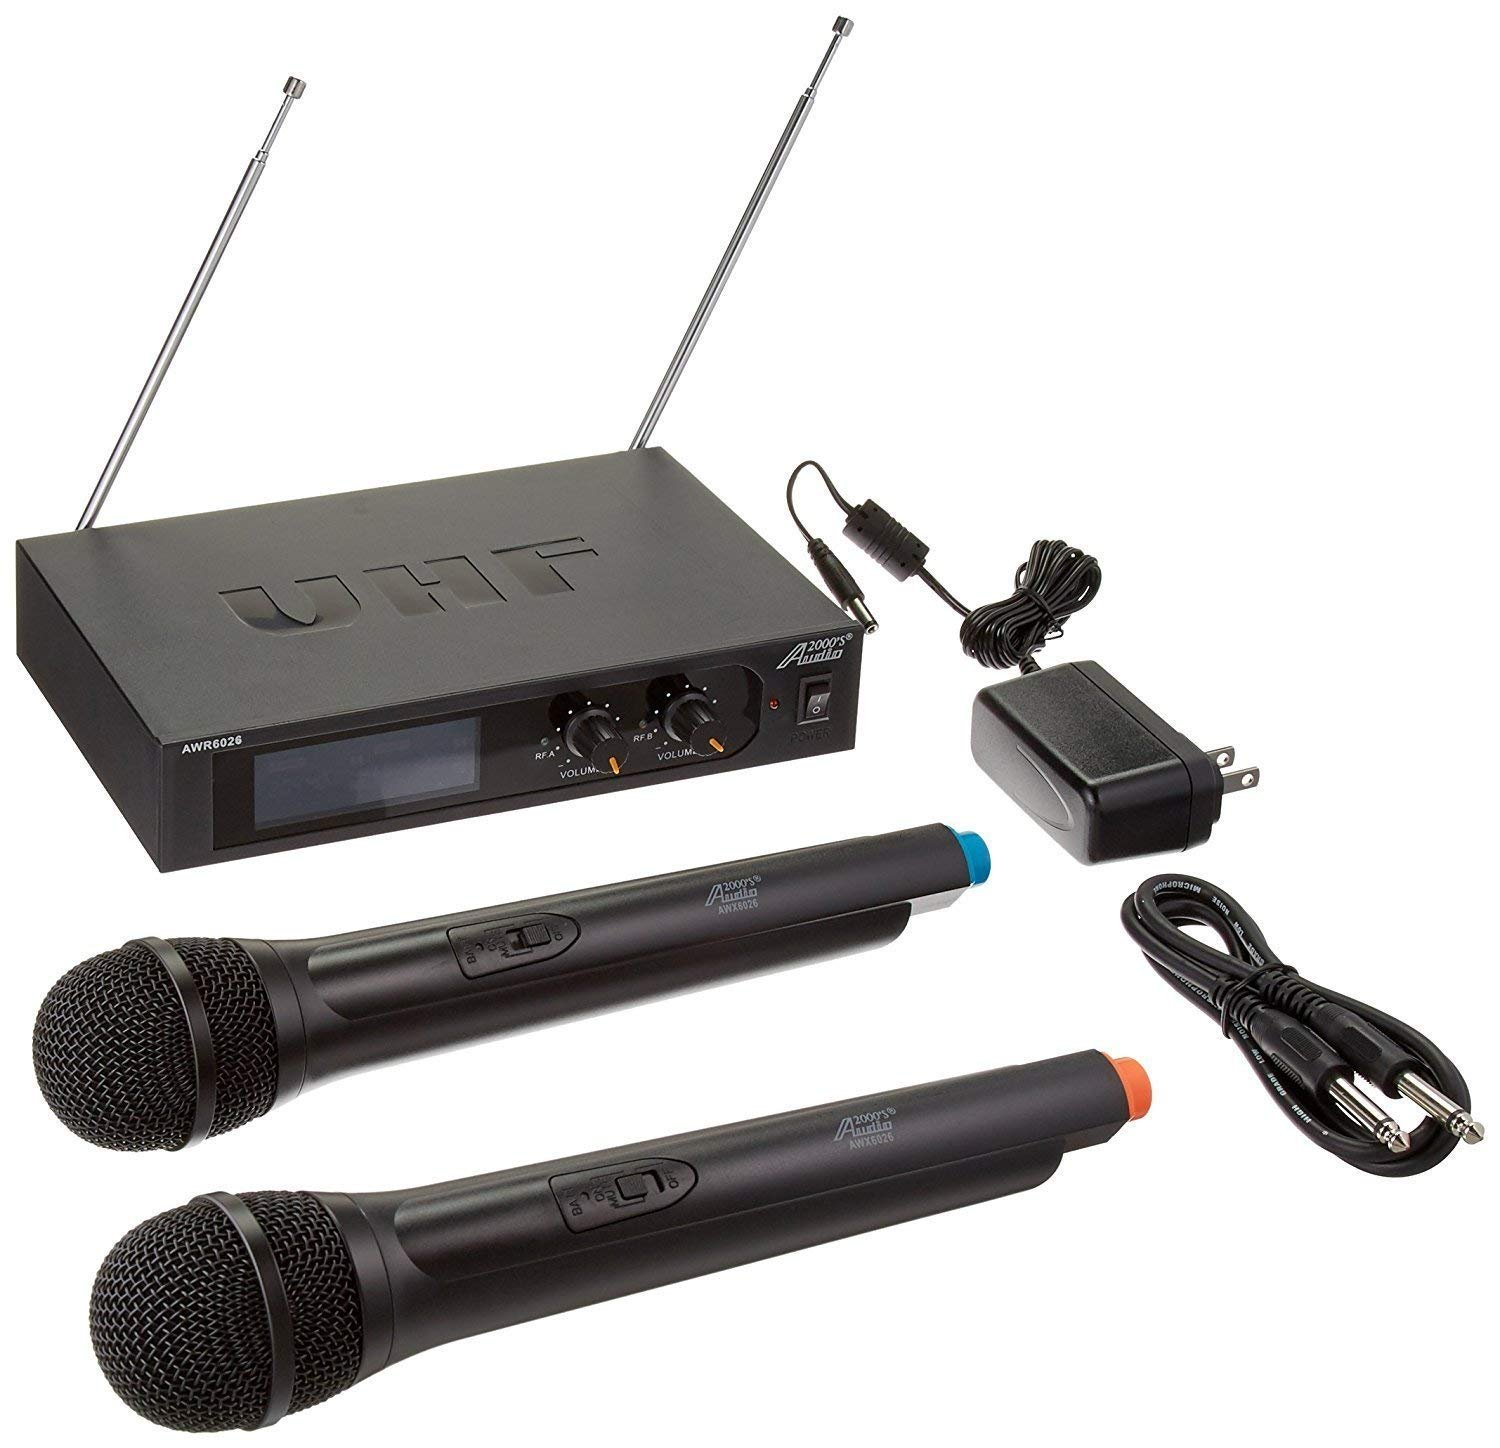 Audio2000'S S6026 Two-Channel System with Two Handheld Wireless Microphones